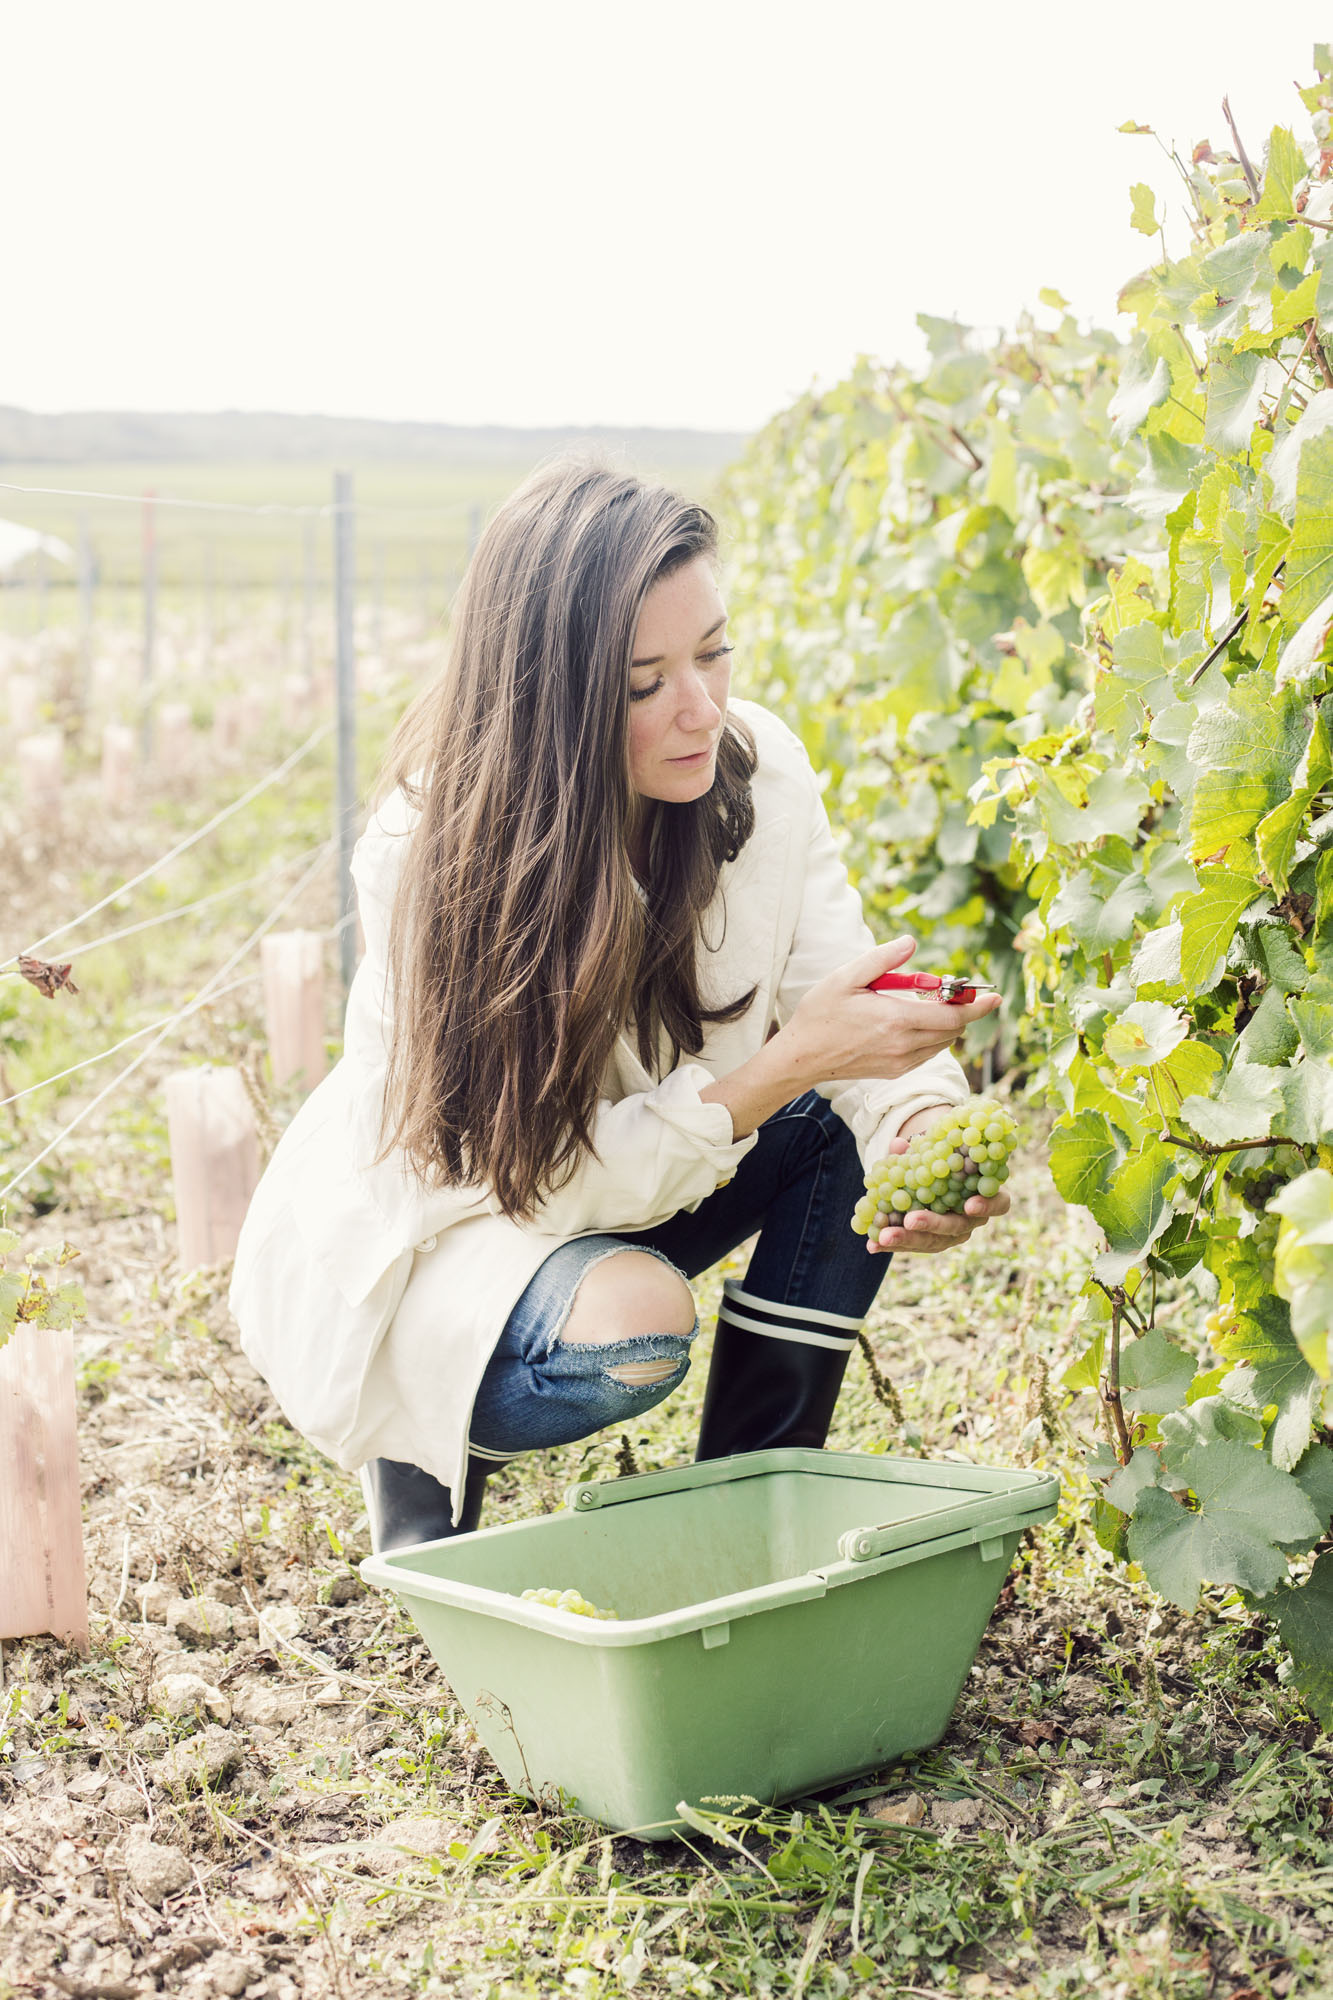 ruinart_champagne_harvest_005